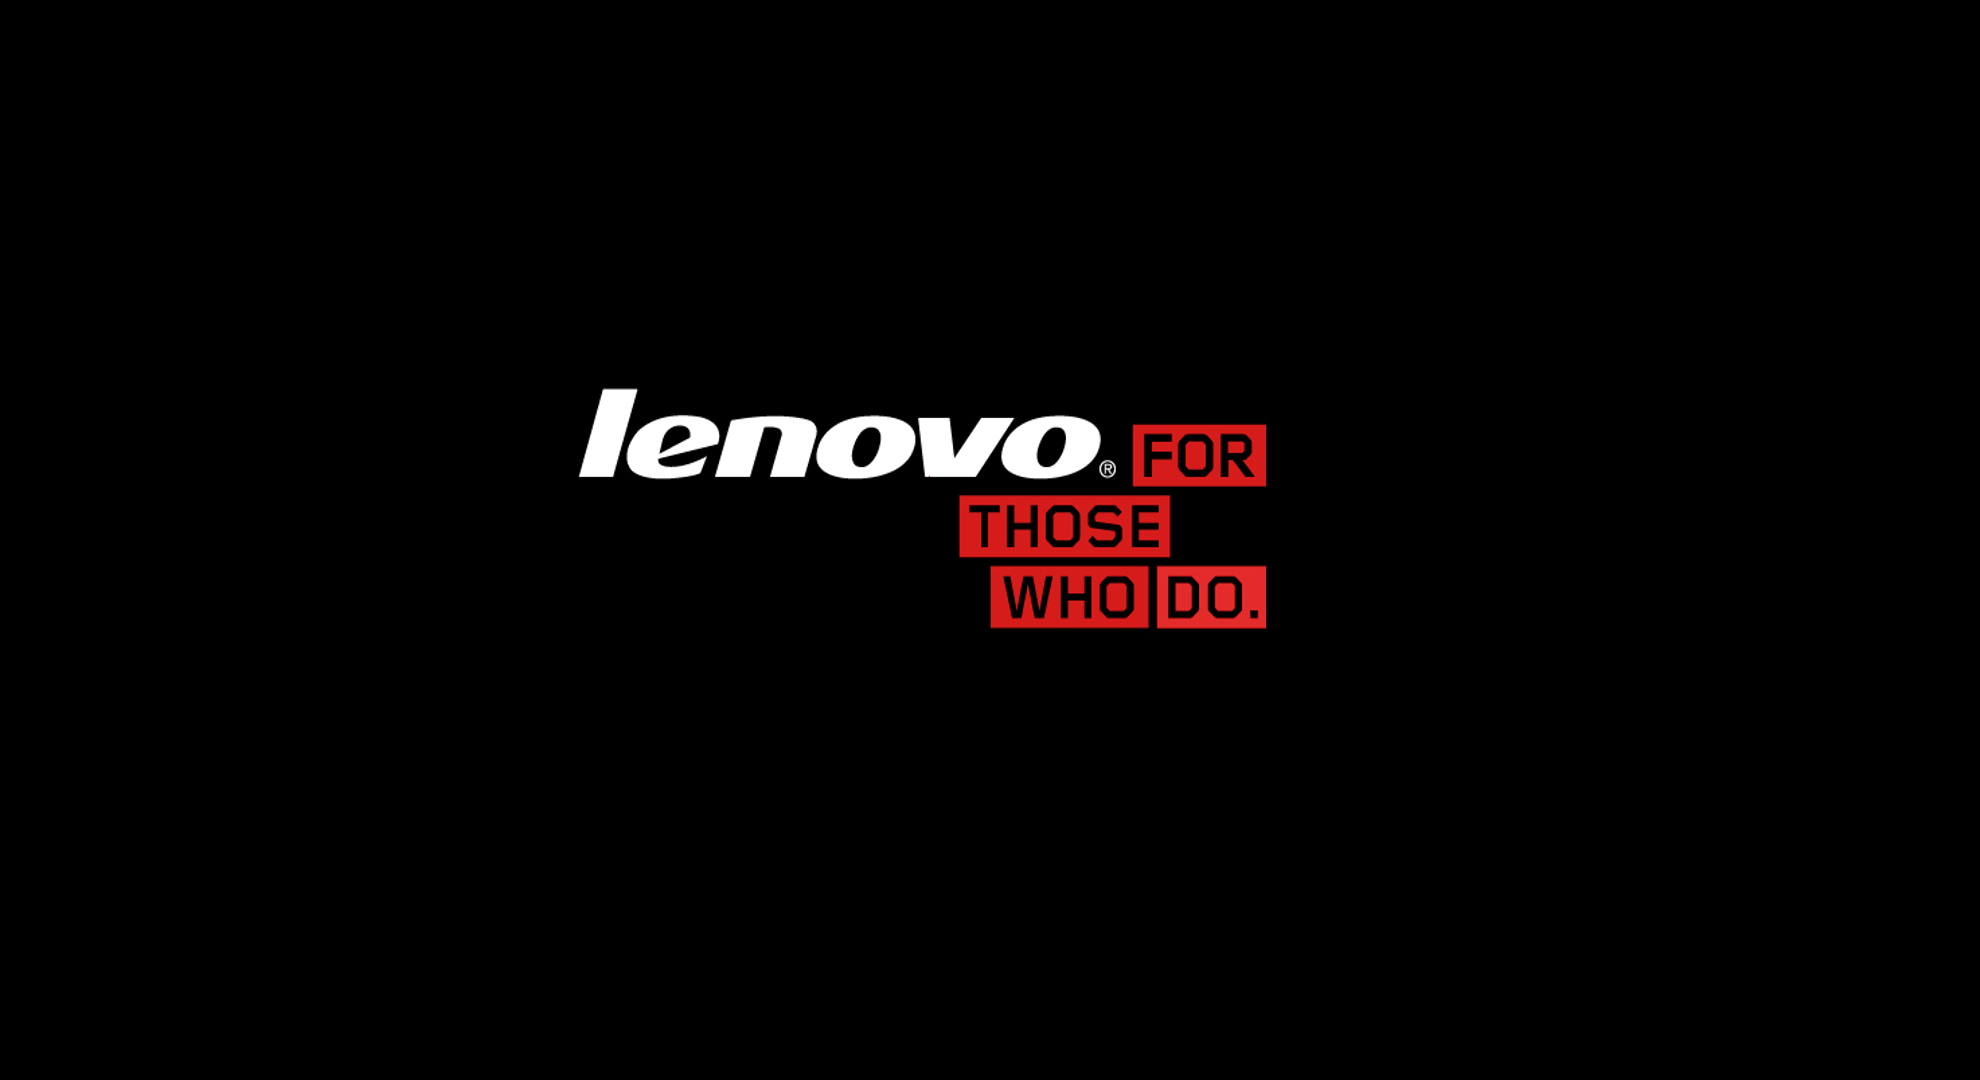 Ultra 4k hd lenovo wallpaper wallpapersafari - Related Pictures Free Ibm Lenovo Thinkpad Wallpaper Download The Free